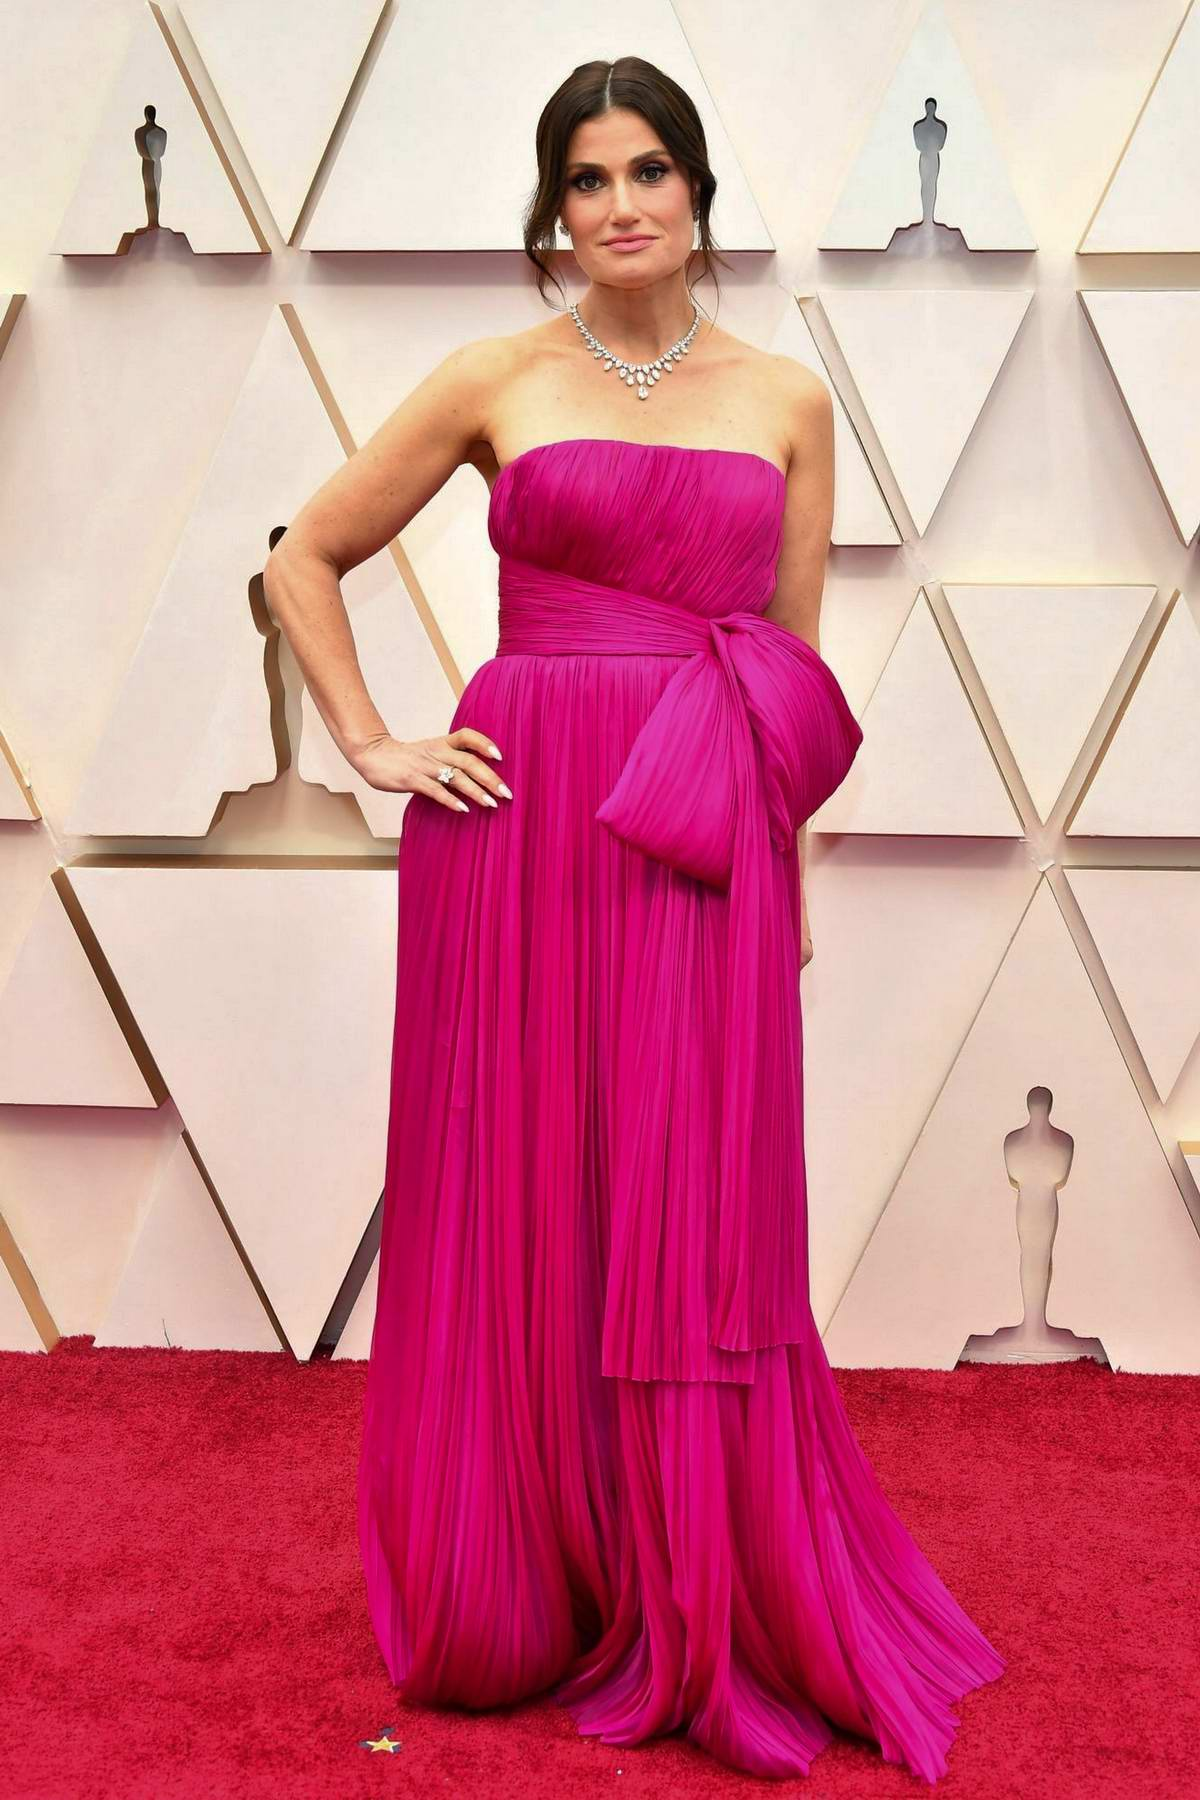 Idina Menzel attends the 92nd Annual Academy Awards at Dolby Theatre in Los Angeles